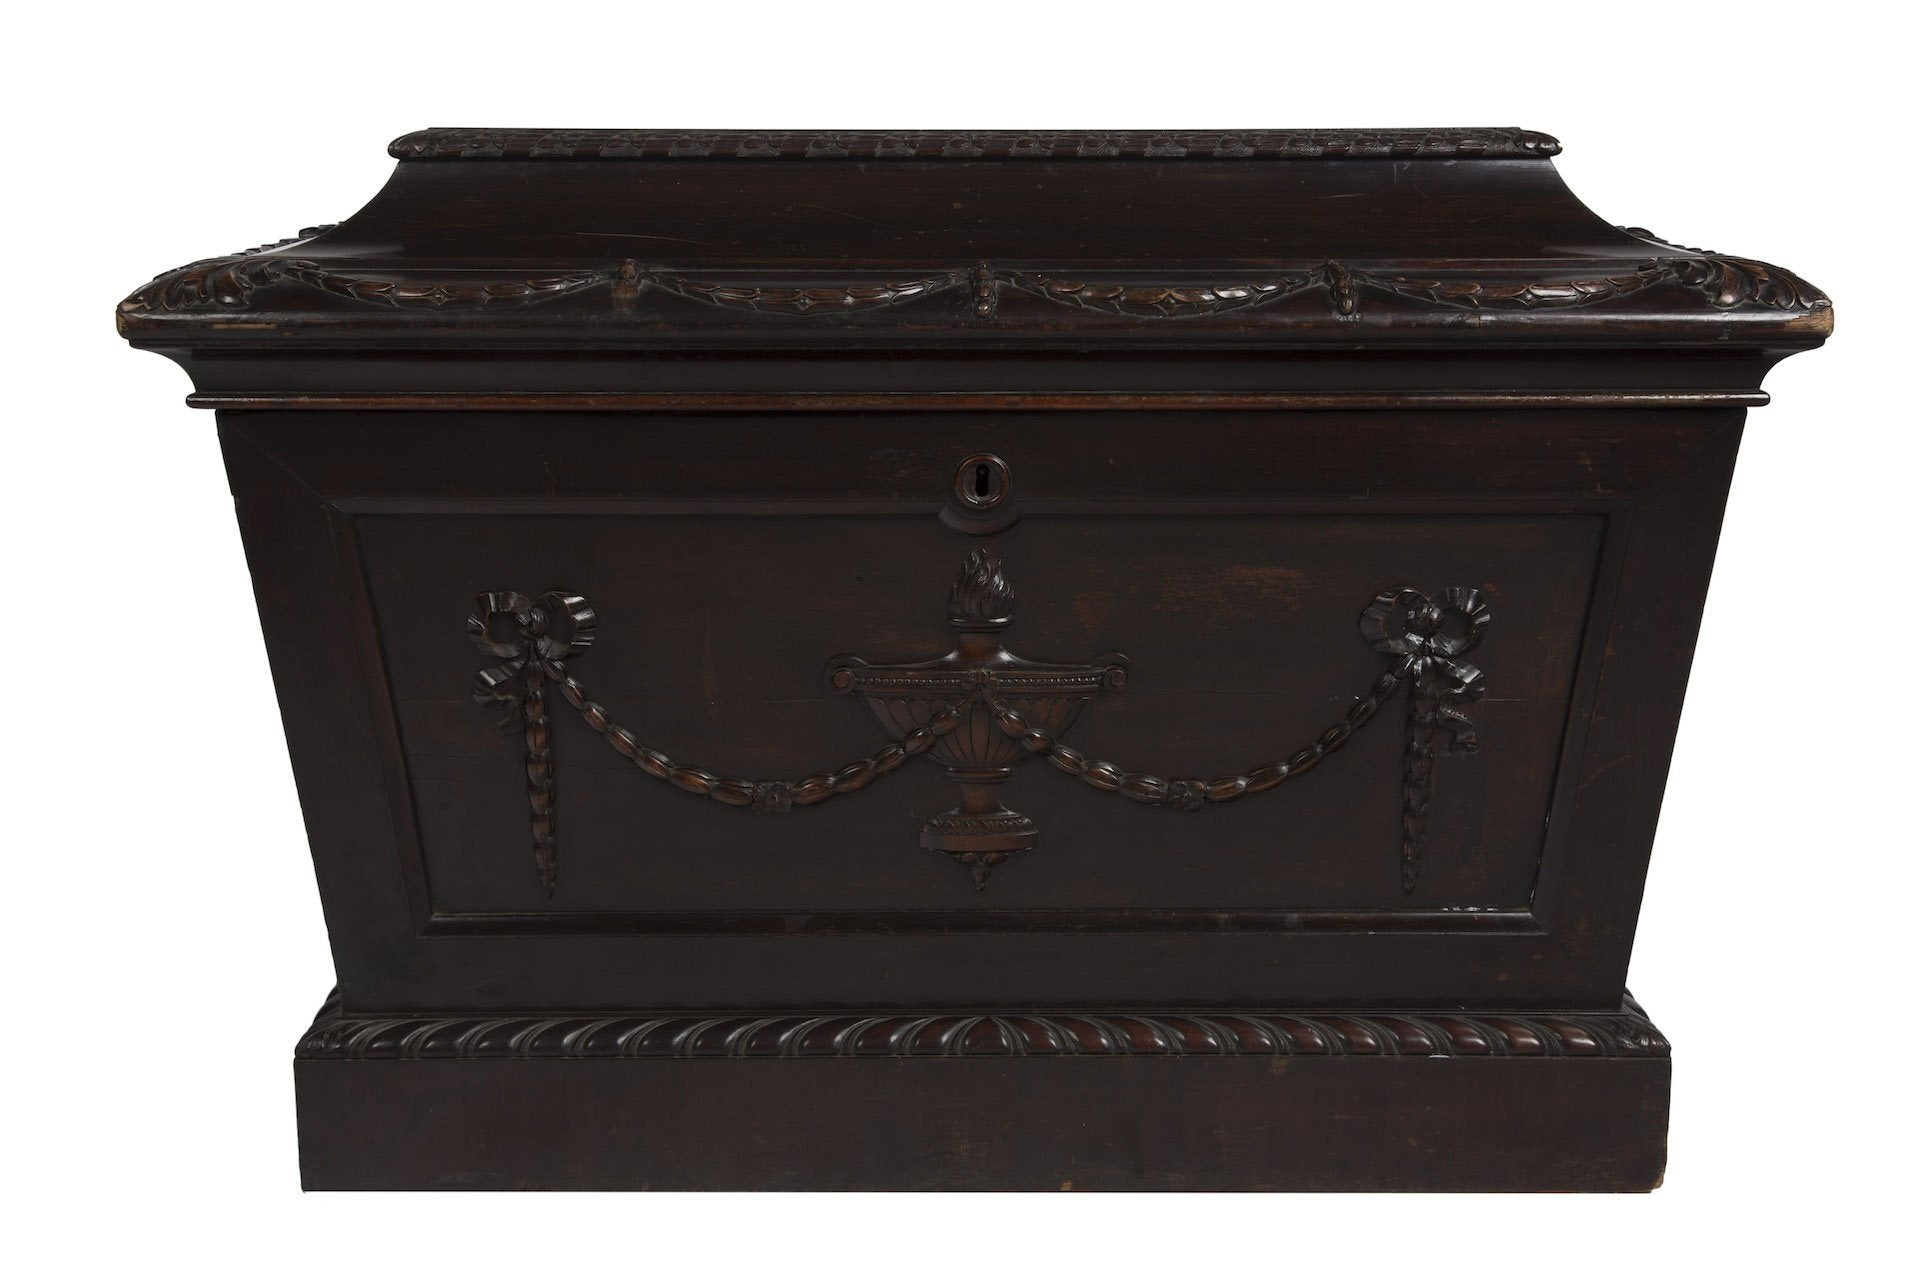 20th Century English Mahogany Cellarette - A Modern Grand Tour